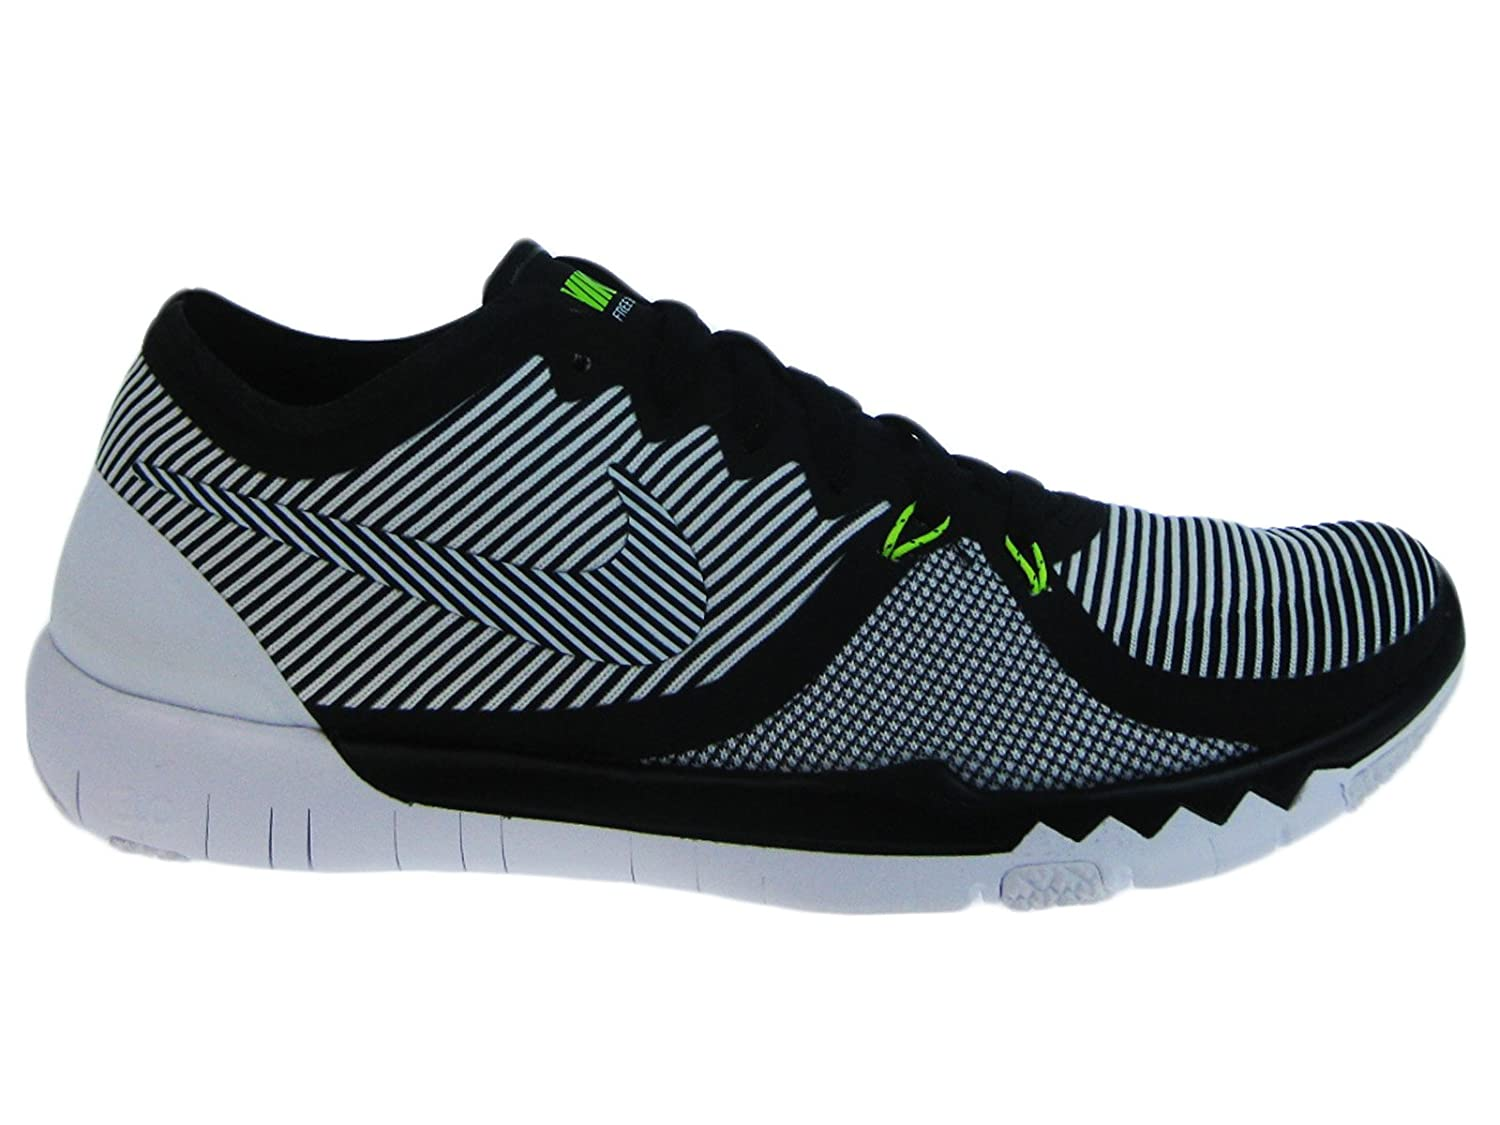 Cheap Nike Roshe One Men's Running Shoes Black/Black